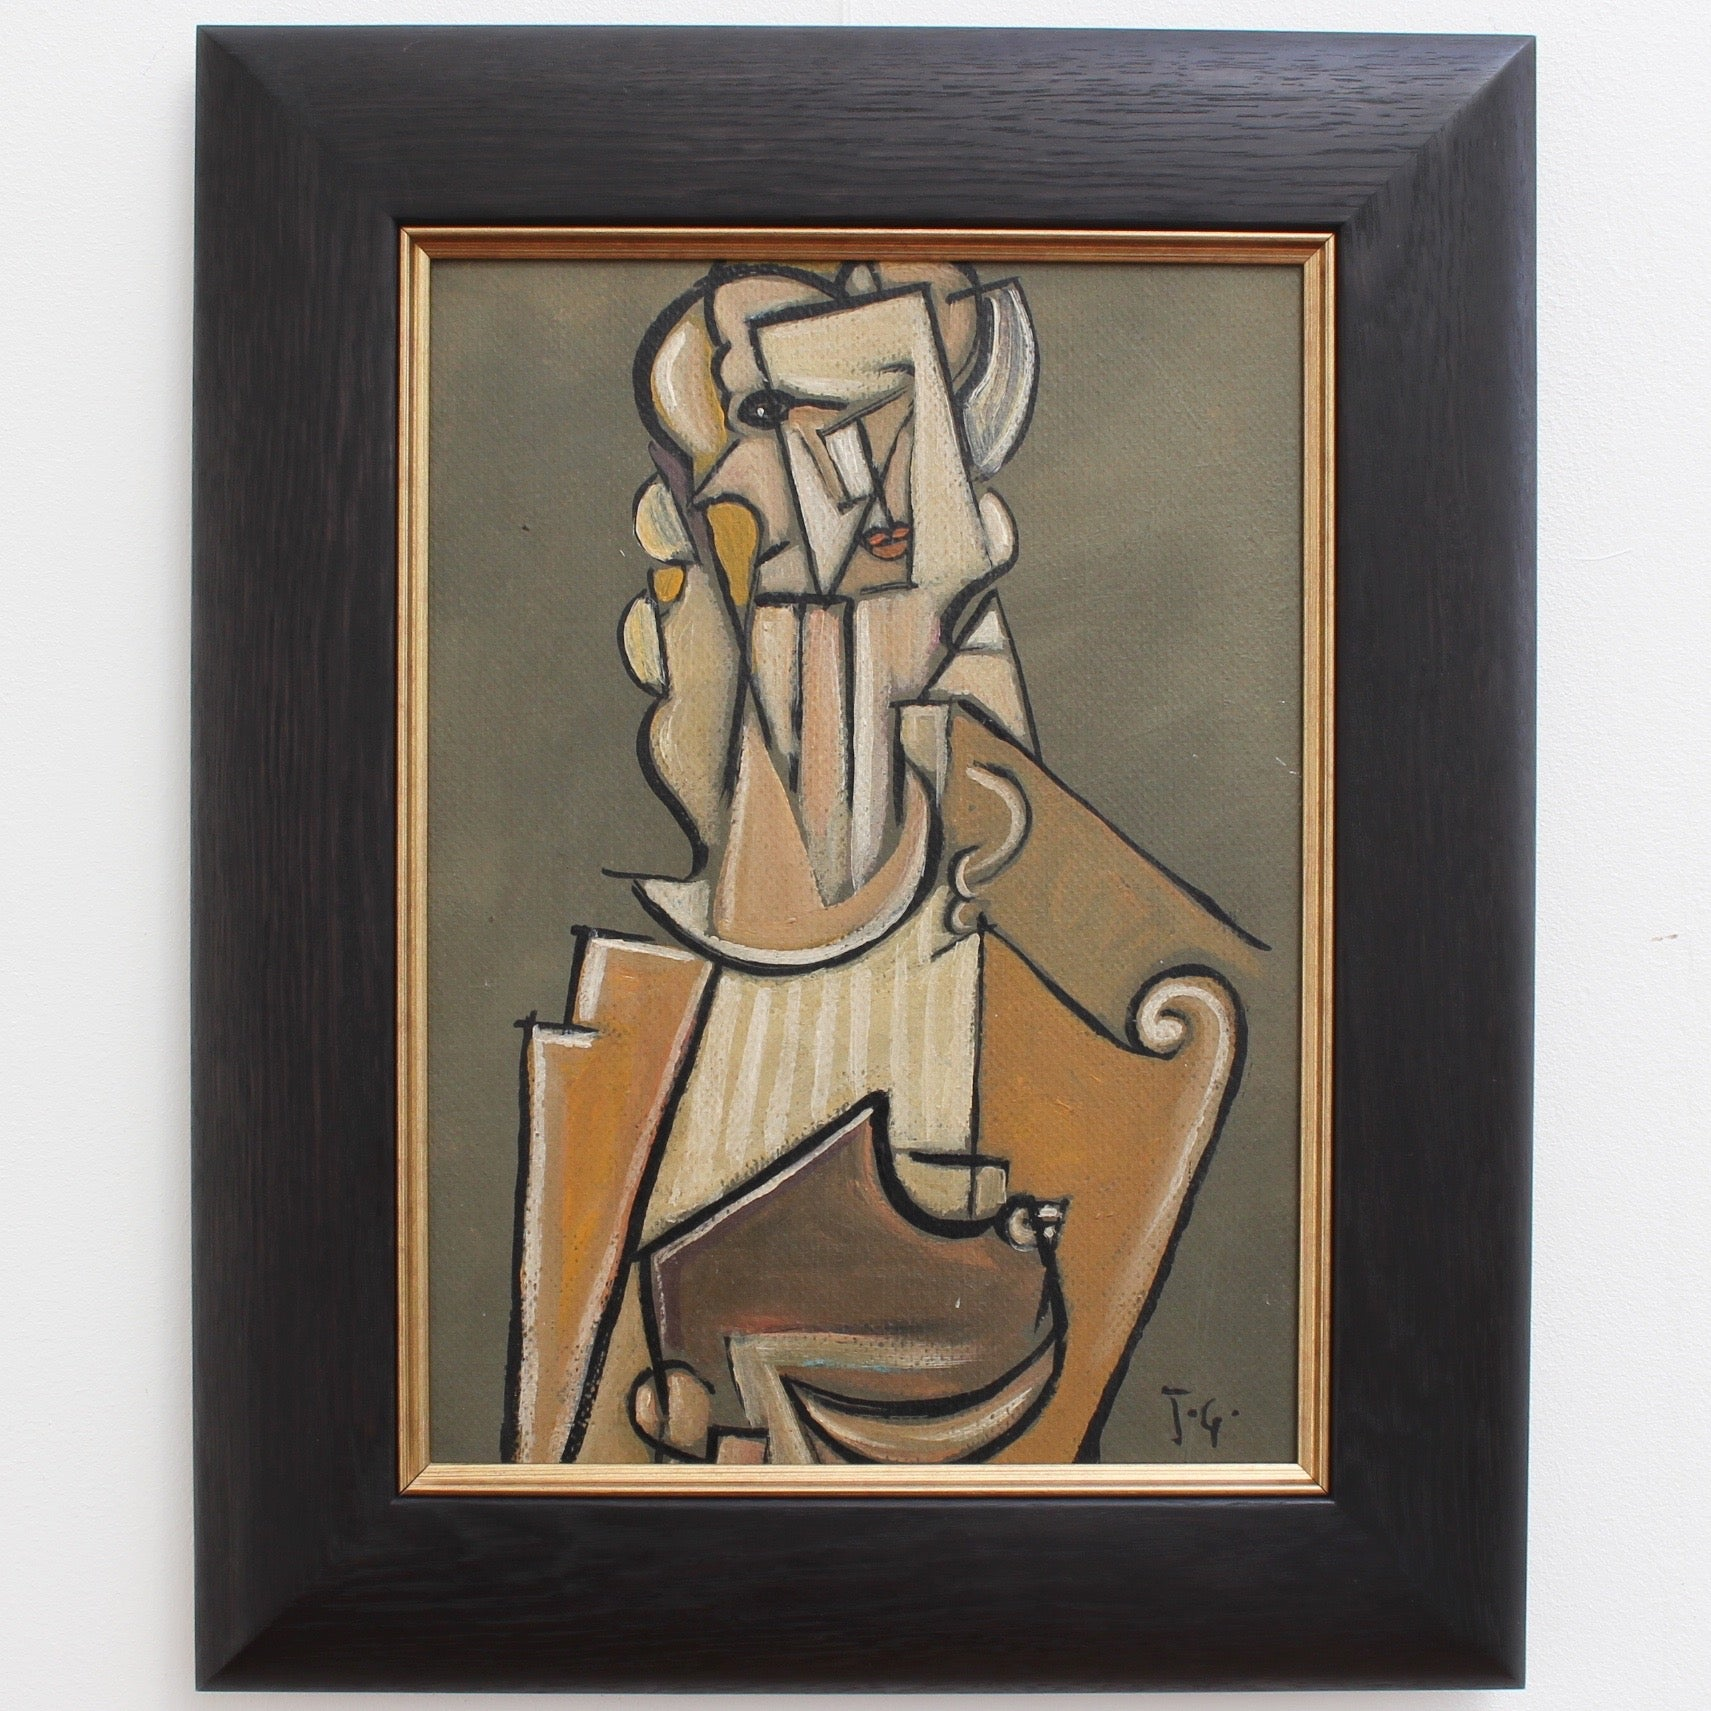 'Musician with Harp' by J.G. (circa 1940s - 1960s)